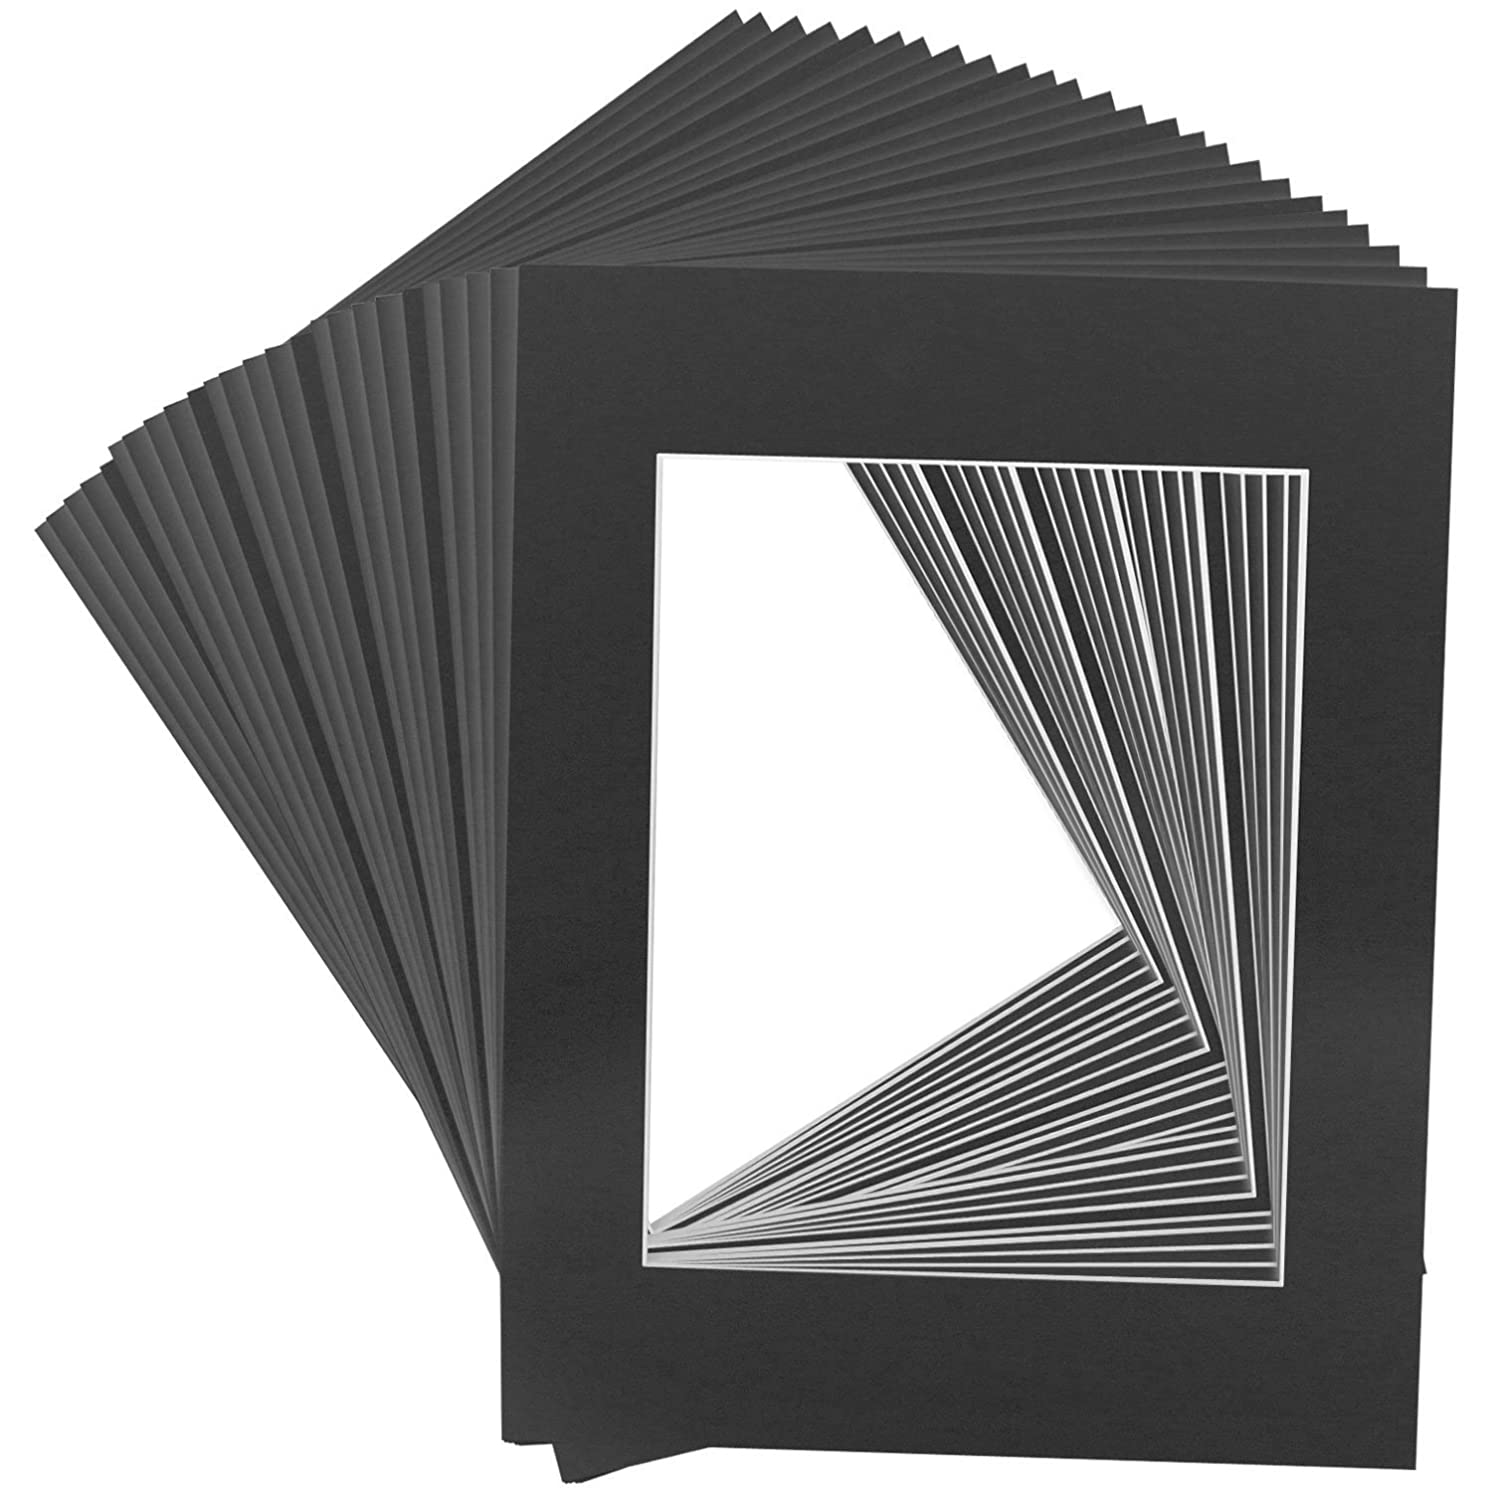 Mat Board Center Premier Acid-Free Pre-Cut 8x10 Black Picture Mat Set. Includes a Pack of 25 White Core Bevel Cut Mattes for 5x7 Photos, Pack of 25 Backers & Clear Bags